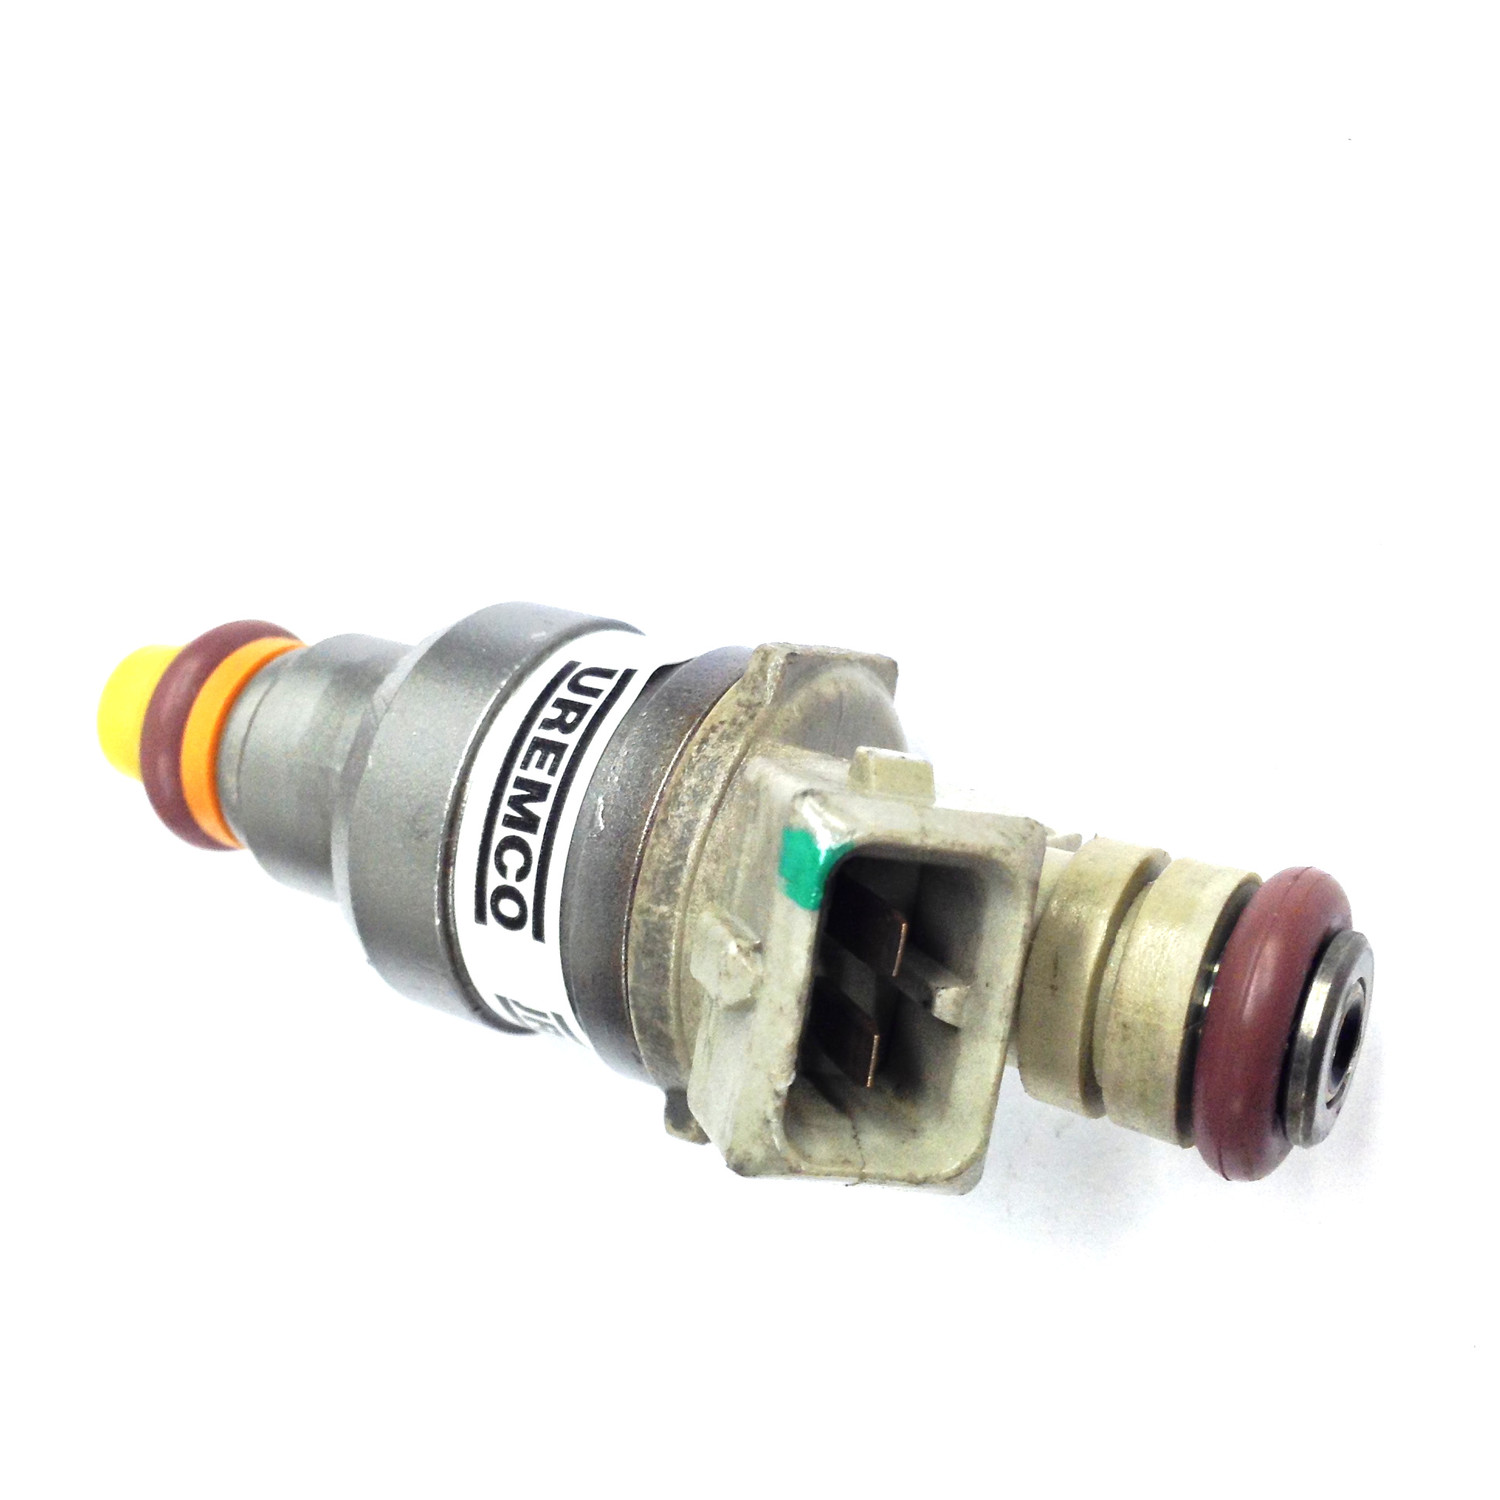 UNITED REMANUFACTURING CO - Fuel Injector - URC 46708